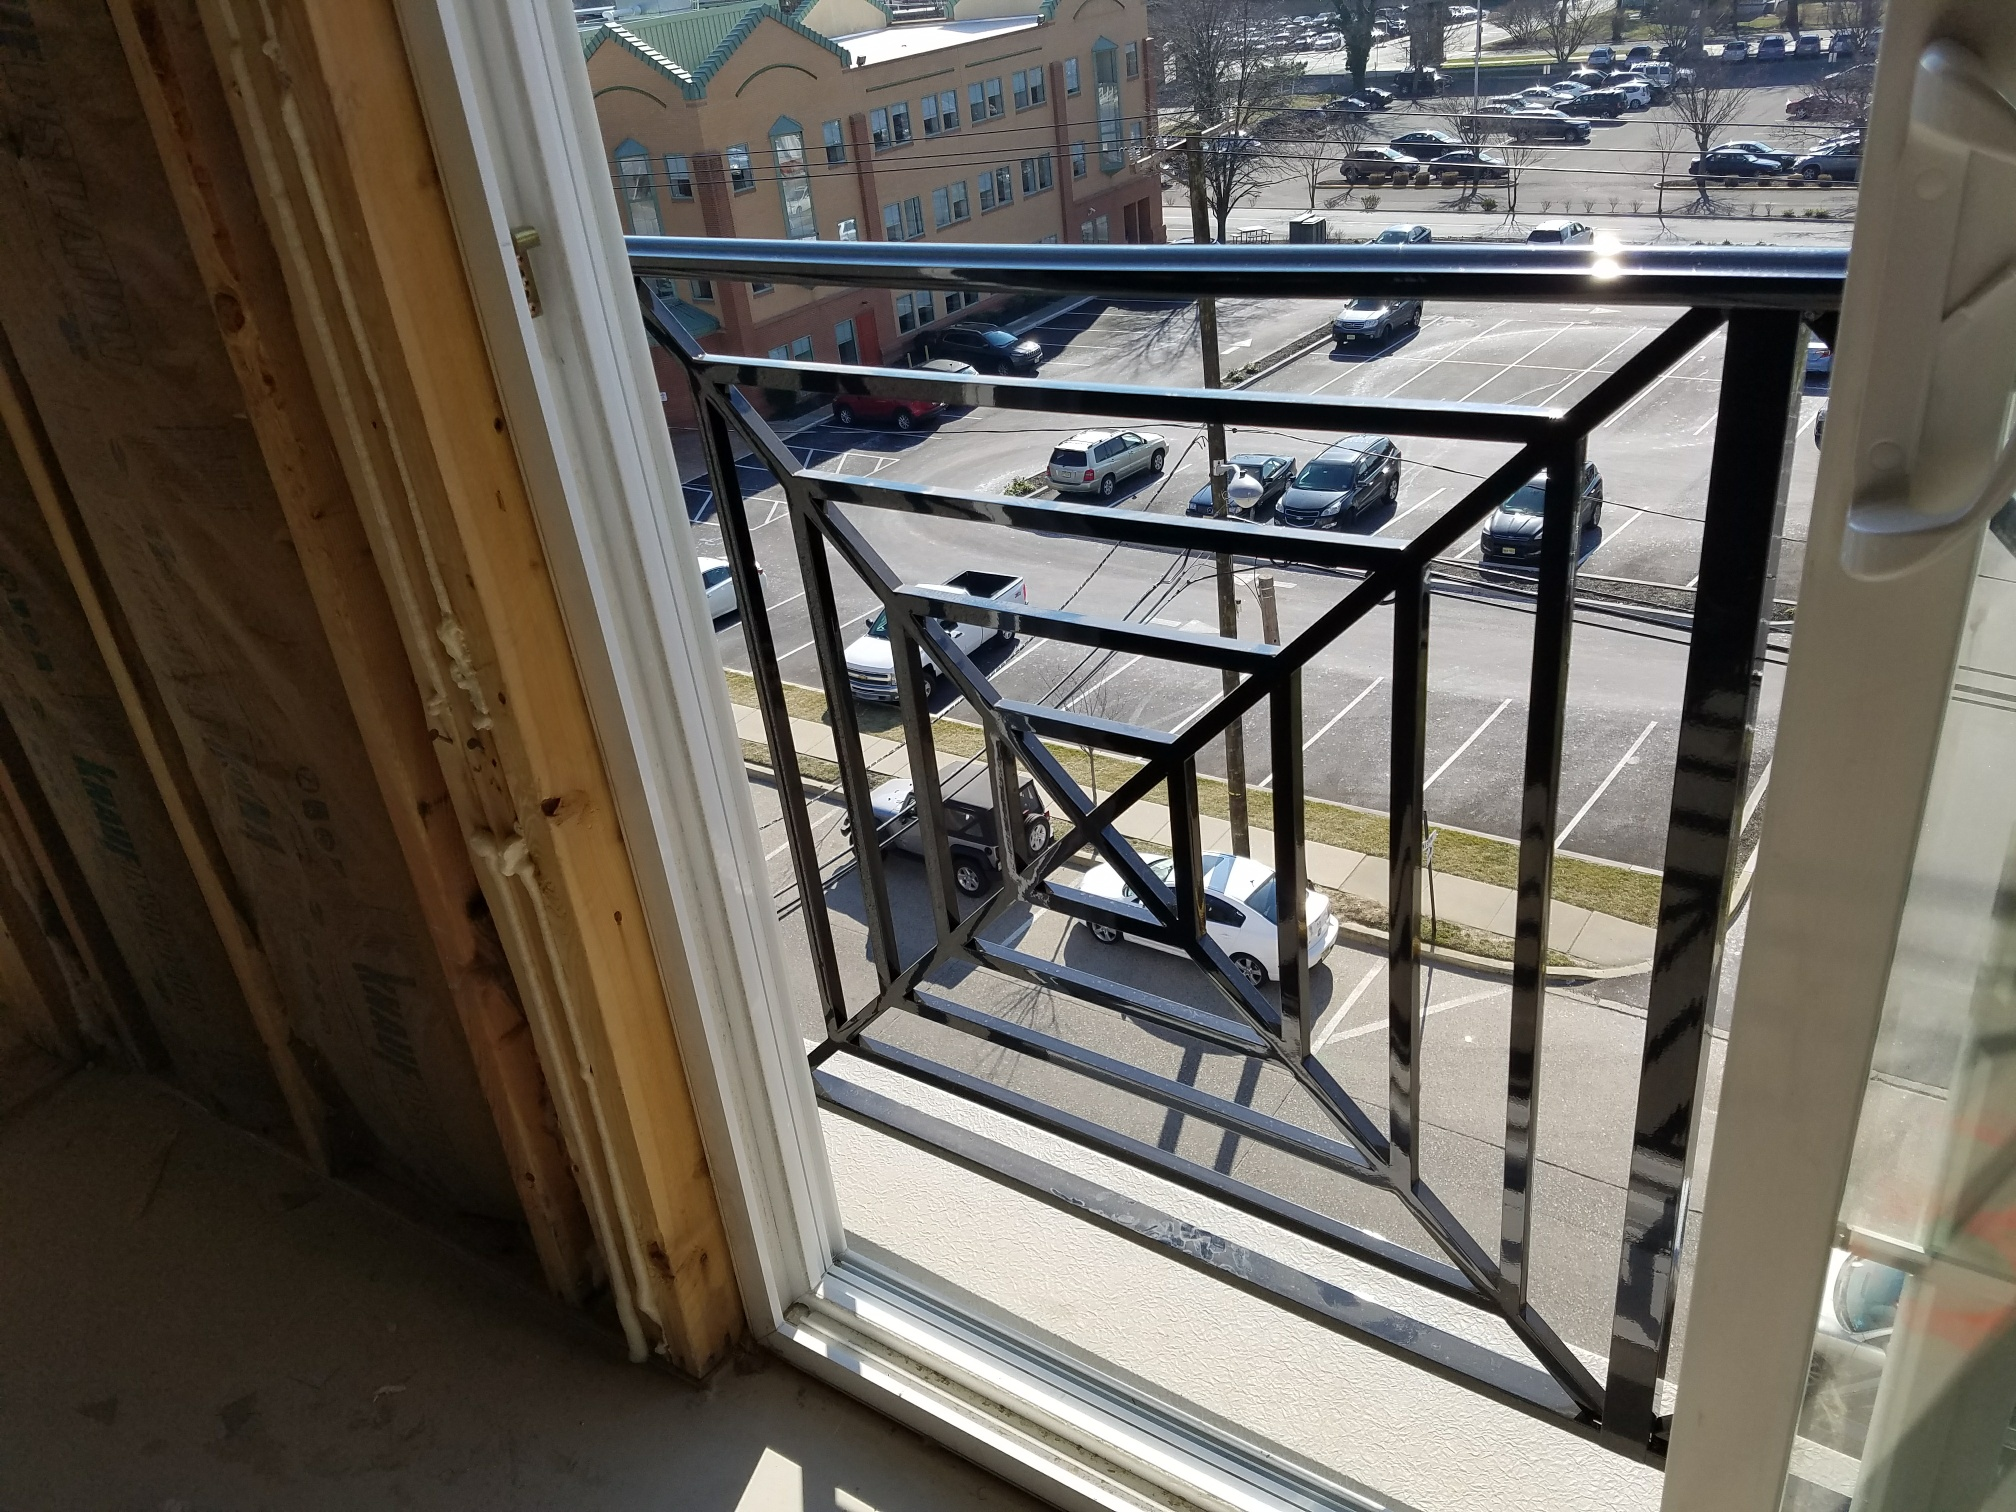 Powder Coated Aluminum Balcony Rails, Westmont NJ